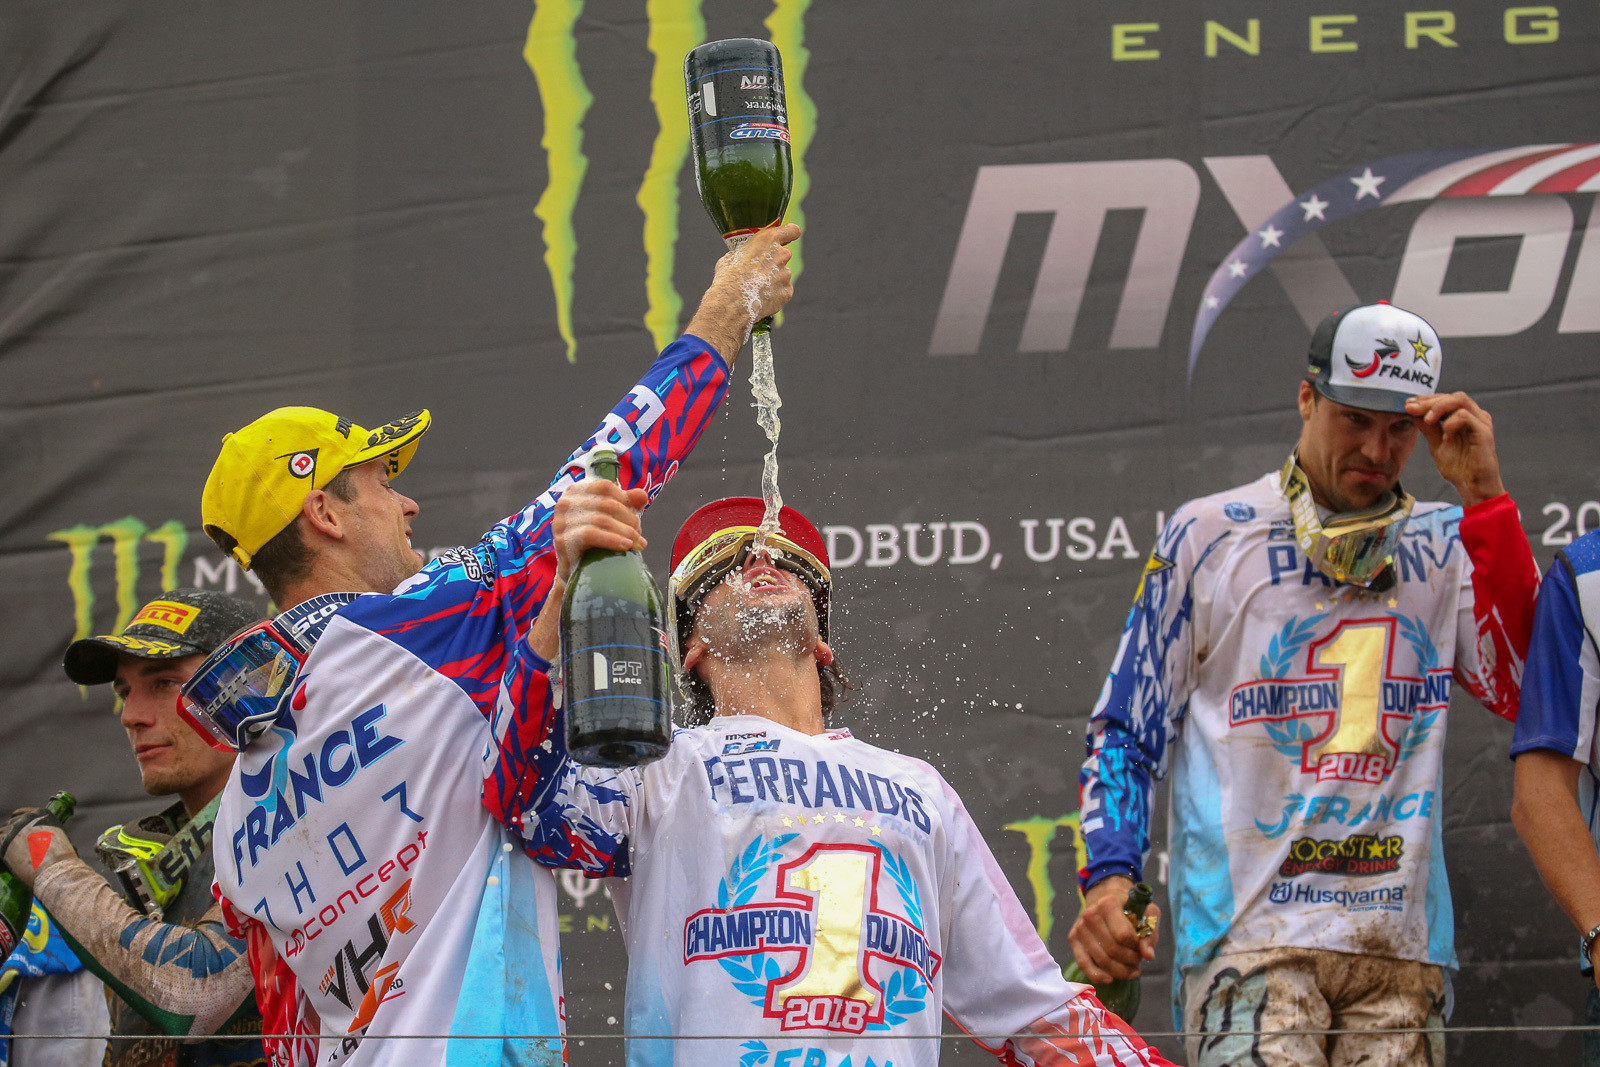 Jordi Tixier helps out Dylan Ferrandis with some champagne...